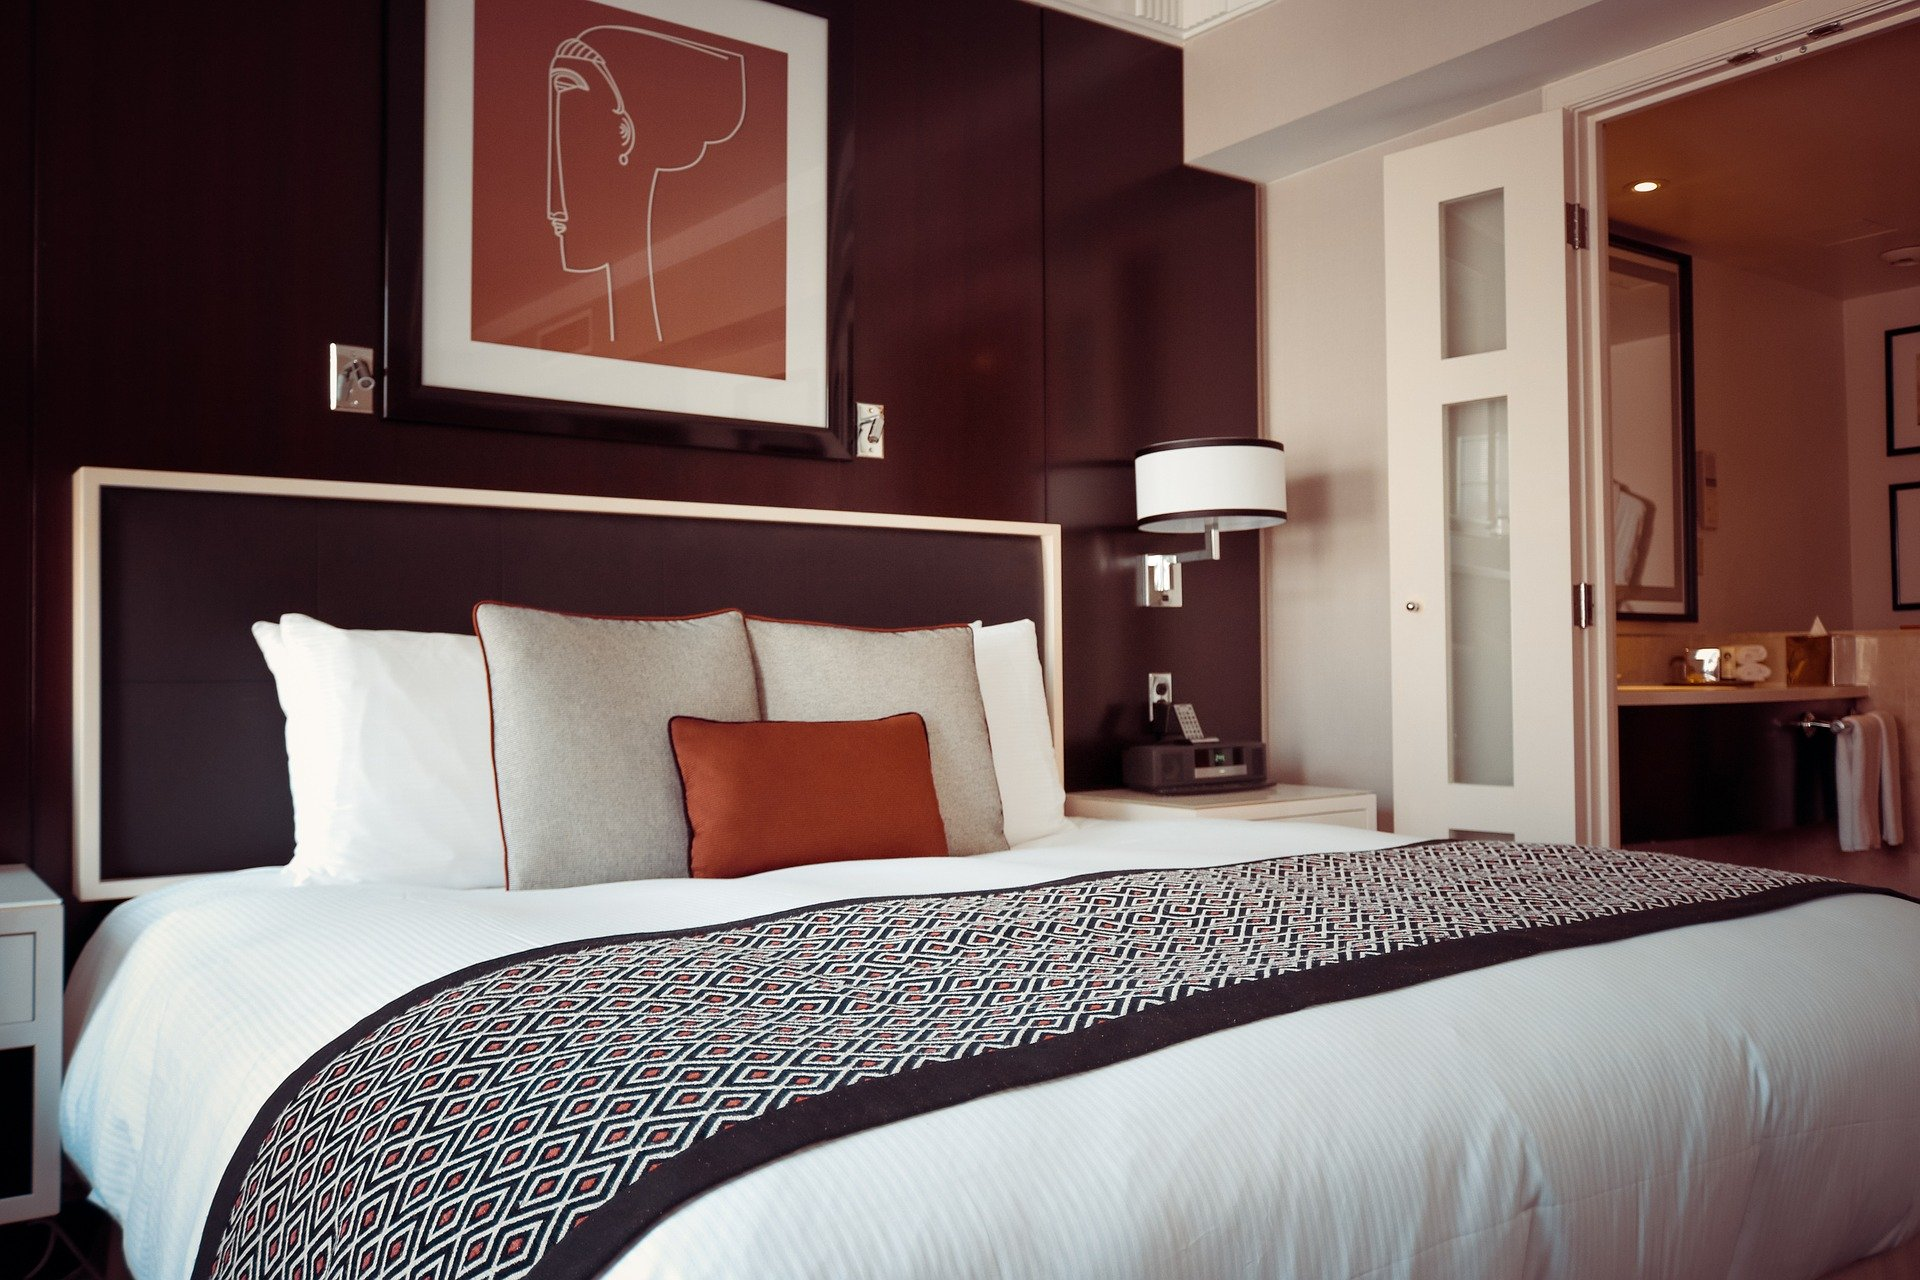 Bedroom with maroon wall and coloured cushion